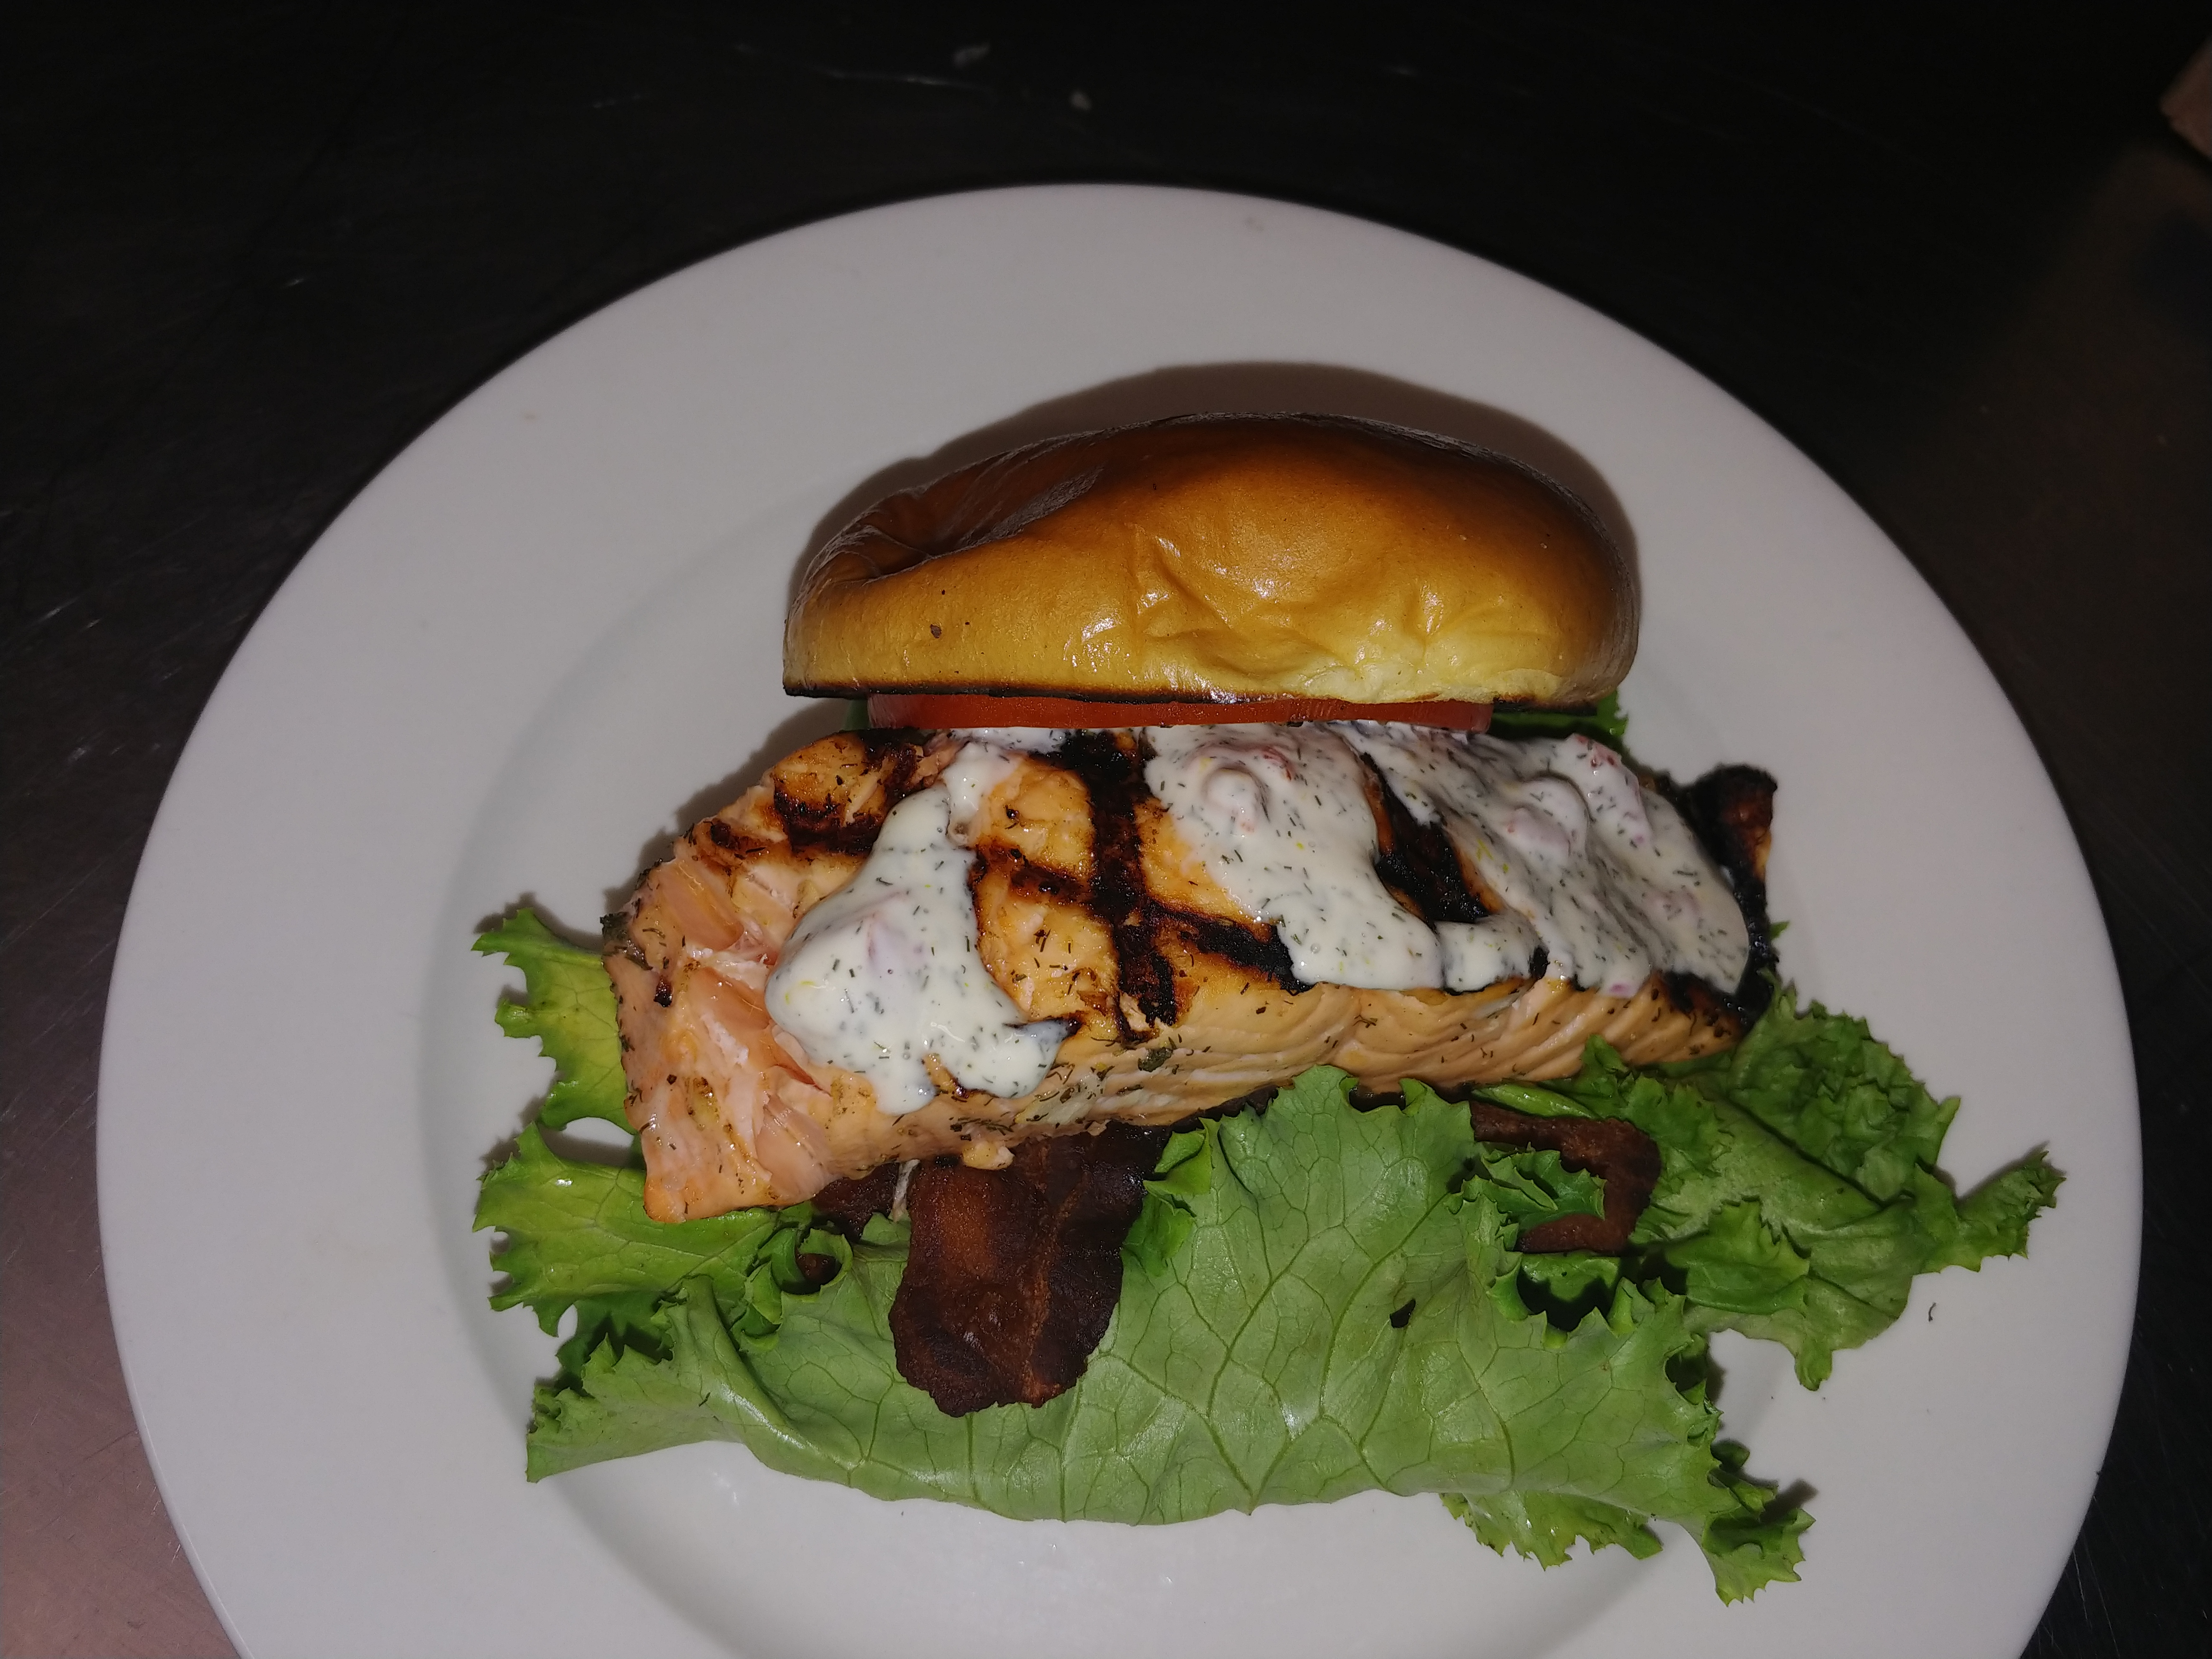 Grilled Salmon Sandwich with Dill Sauce Nathan Byrum